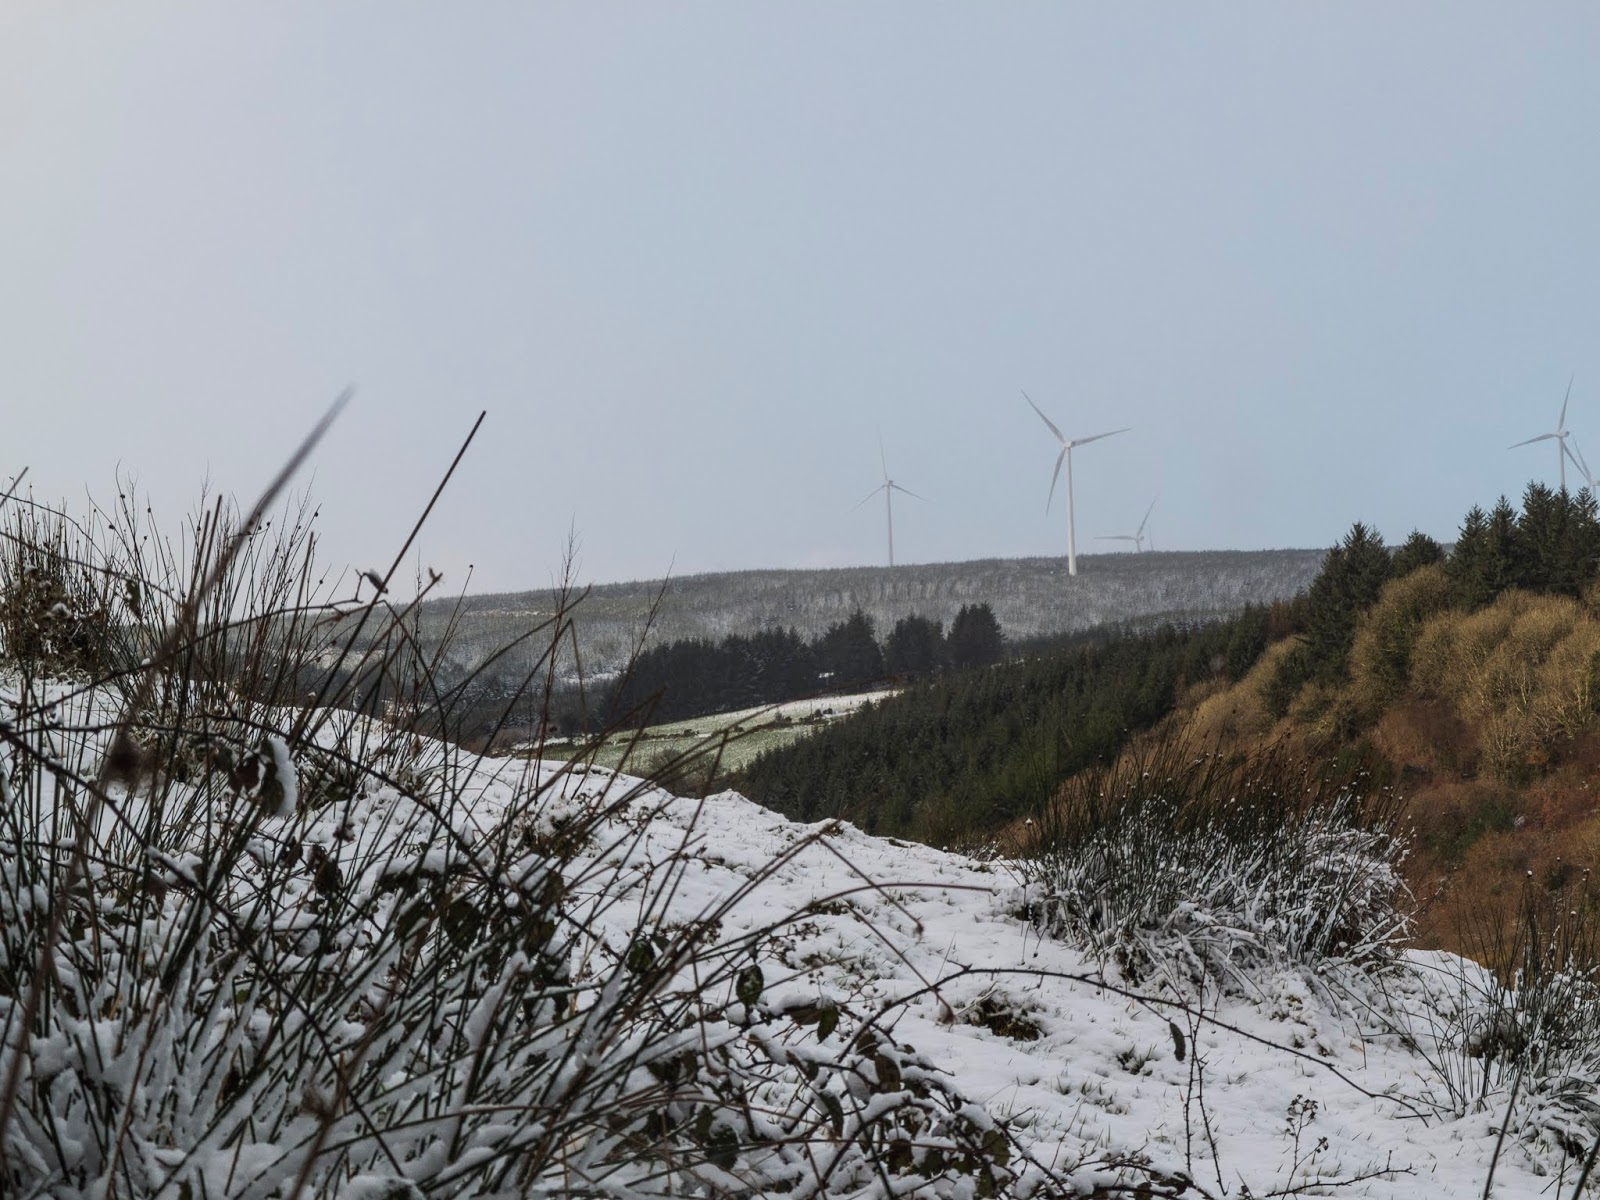 Wintry landscape of a snowy valley in North Cork.